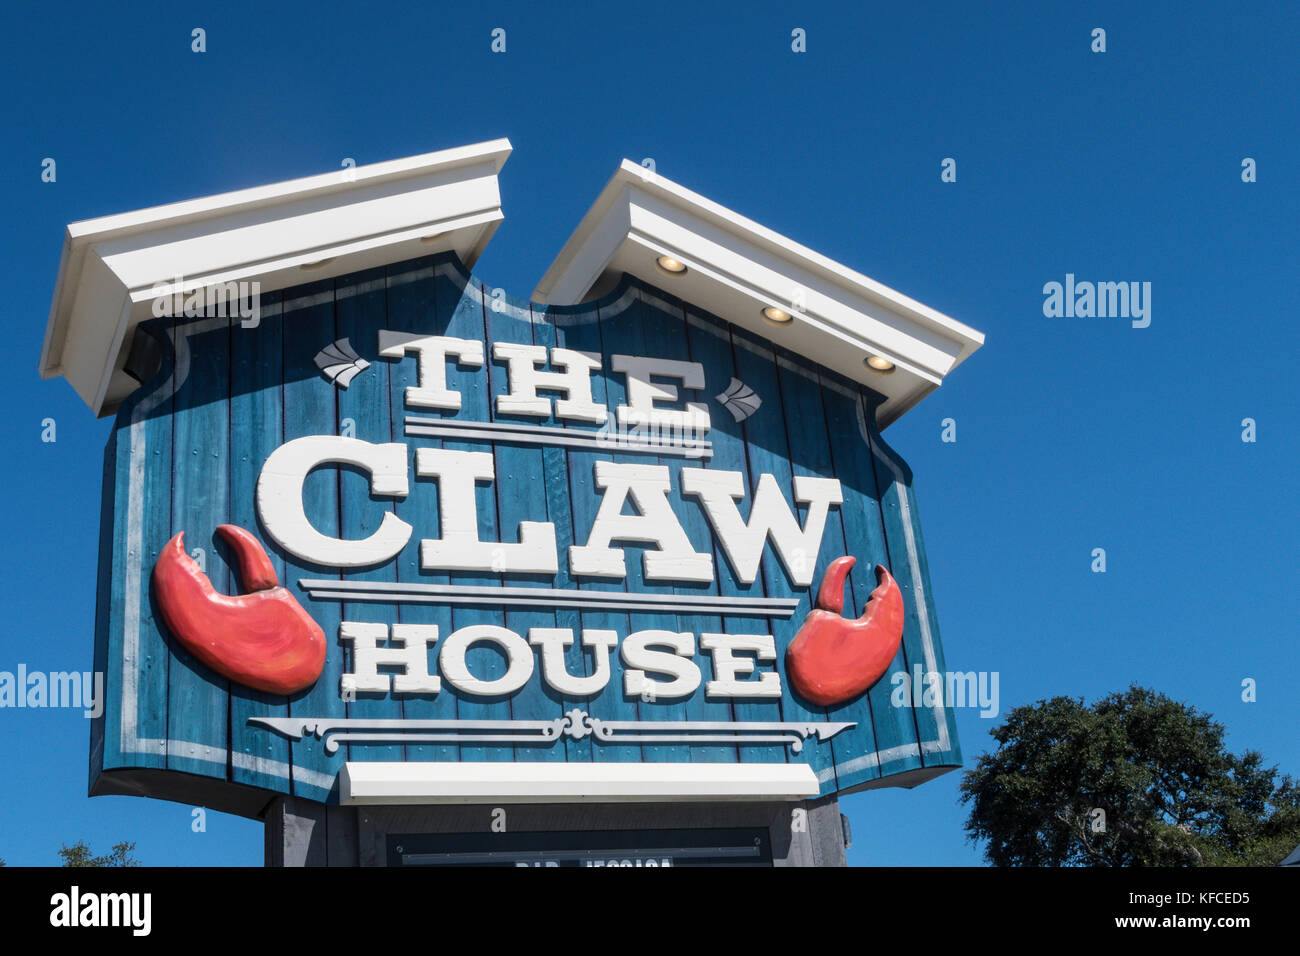 The Claw House Restaurant, Murrells Inlet, SC, USA - Stock Image